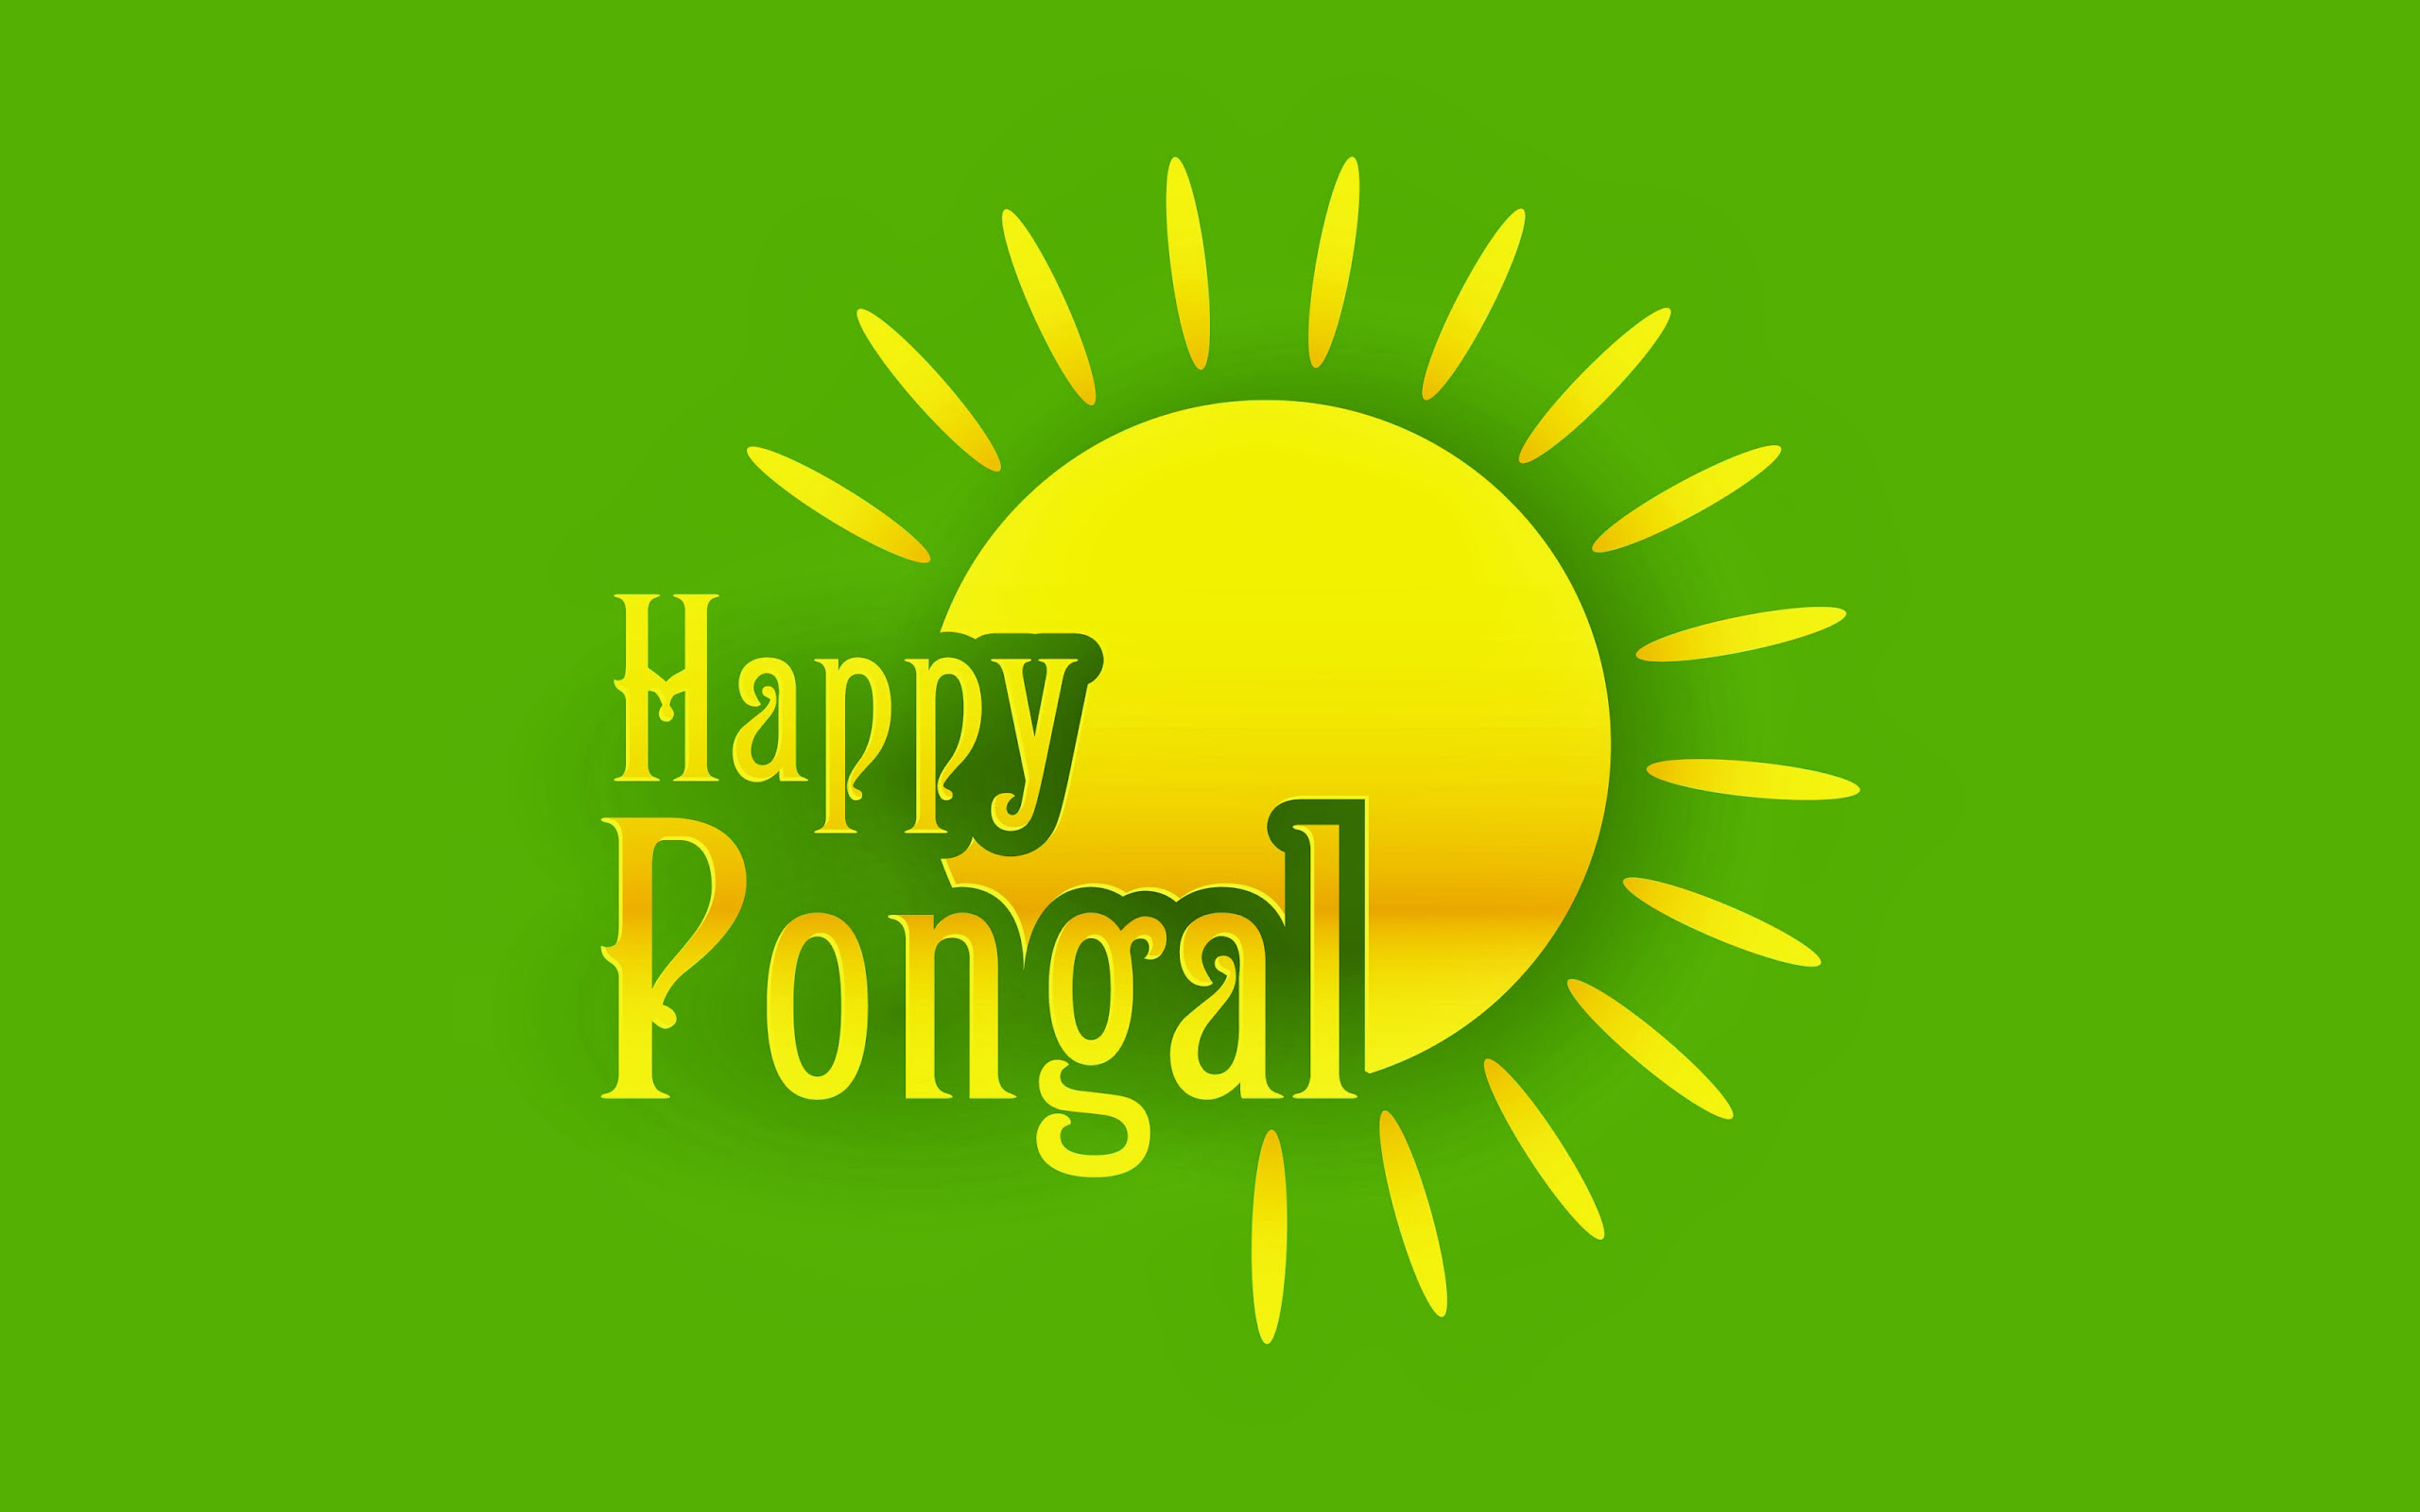 Happy Pongal Messages of 2017 Greetings and Wishes